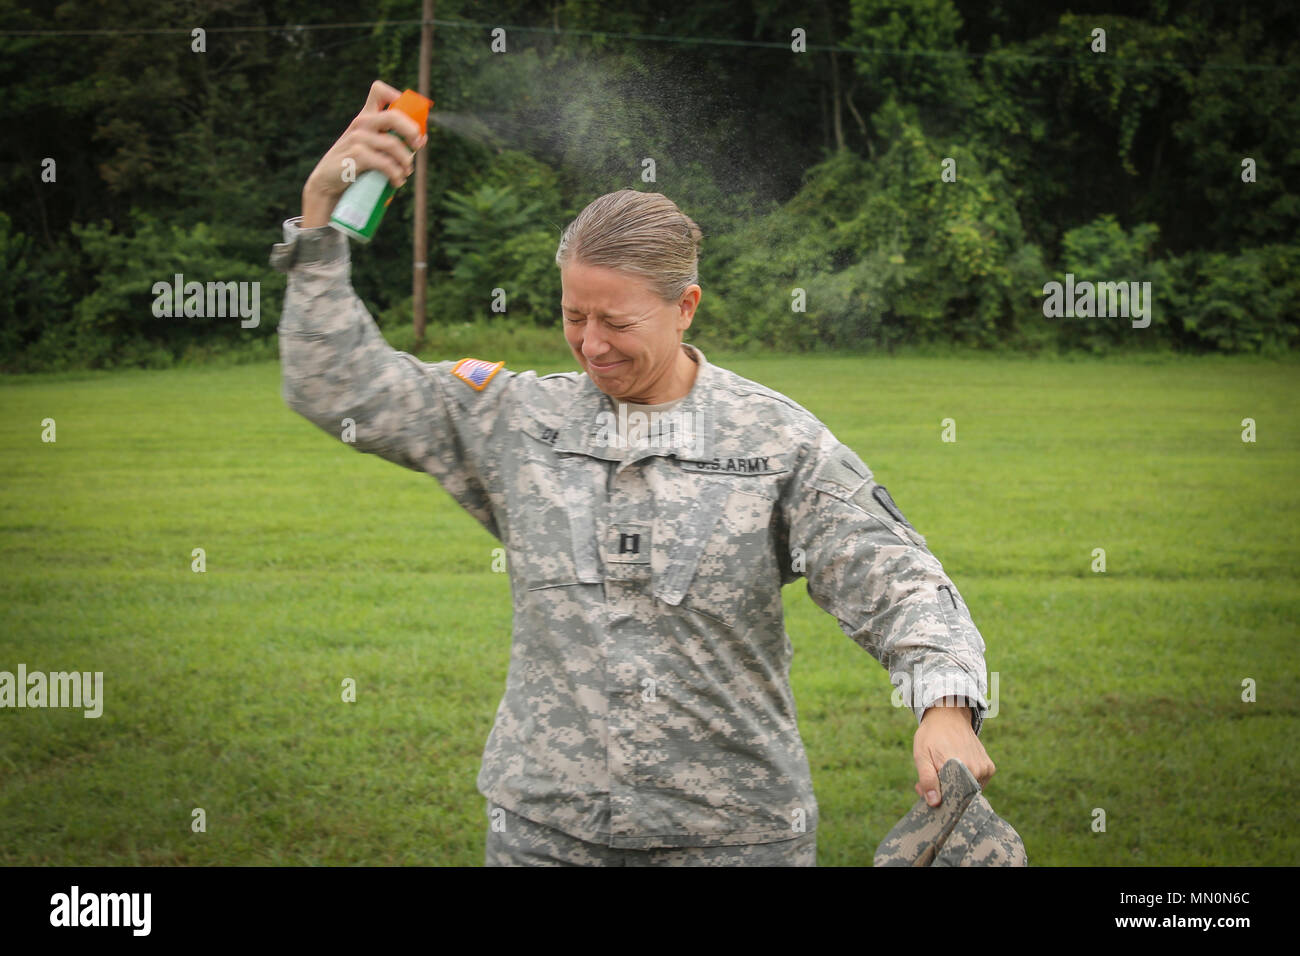 Army Reserve Soldier Capt. Jennifer Dennis, G-1 personnel management branch chief, 335th Signal Command (Theater) sprays herself with bug spray to avoid ticks and any other insects in the New Jersey forests during a land navigation exercise on Joint Base Mcguire-Dix-Lakehurst, New Jersey, Aug. 8. More than 100 Army Reserve Soldiers from the 335th SC (T) Headquarters in East Point, Georgia are at the base conducting a variety of training exercises as part of the unit's annual training. (Official U.S Army Reserve photo by Spc. Matthew E. Drawdy) - Stock Image